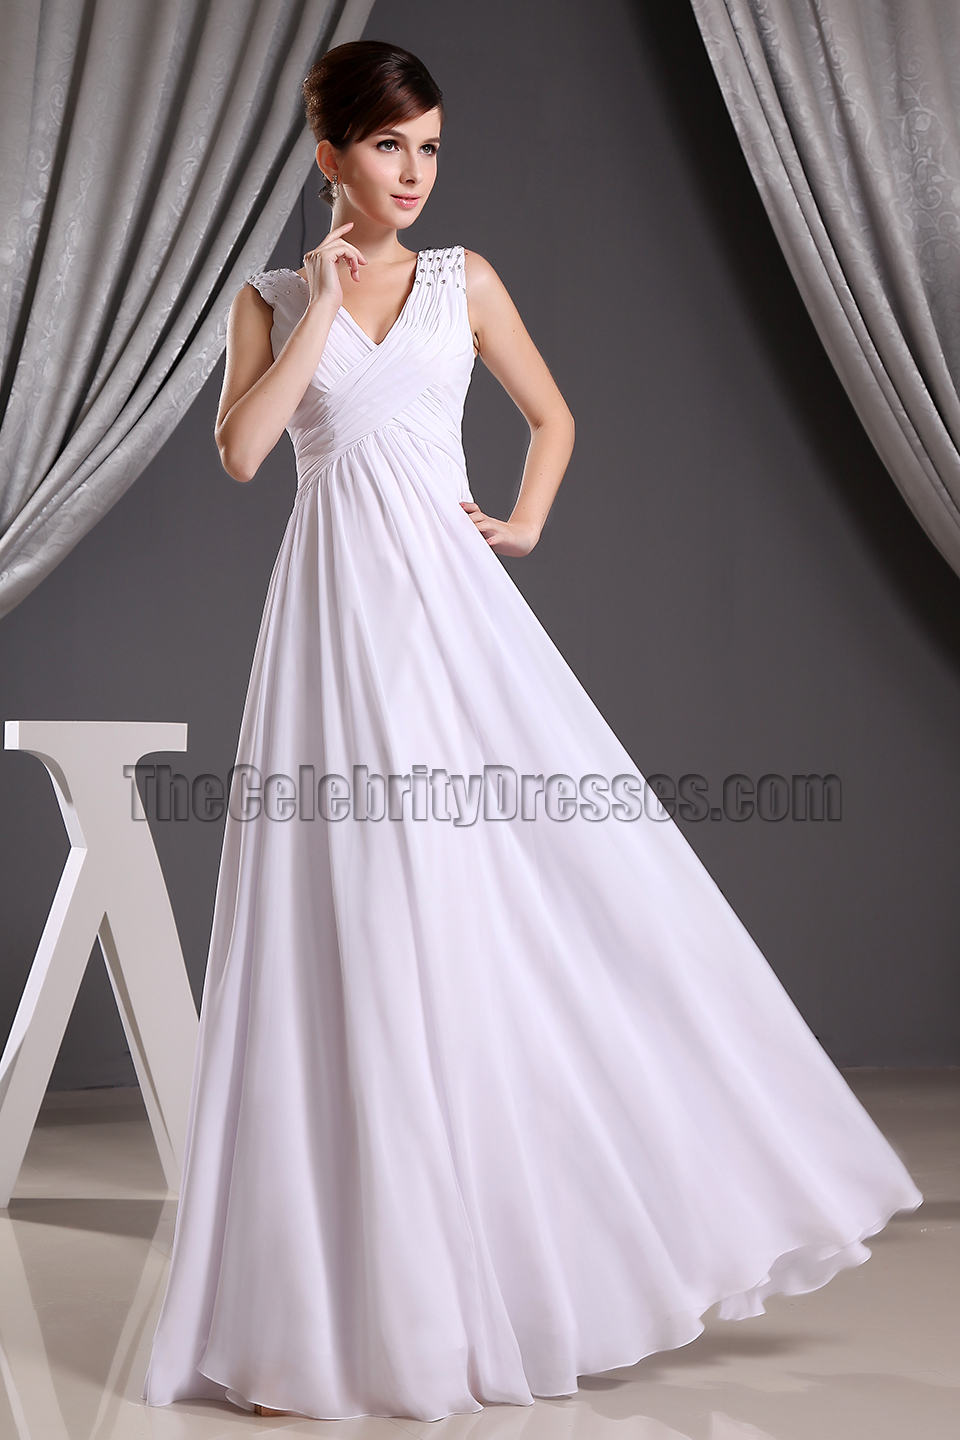 Discount White Chiffon V-neck Prom Gown Evening Dresses Informal ...